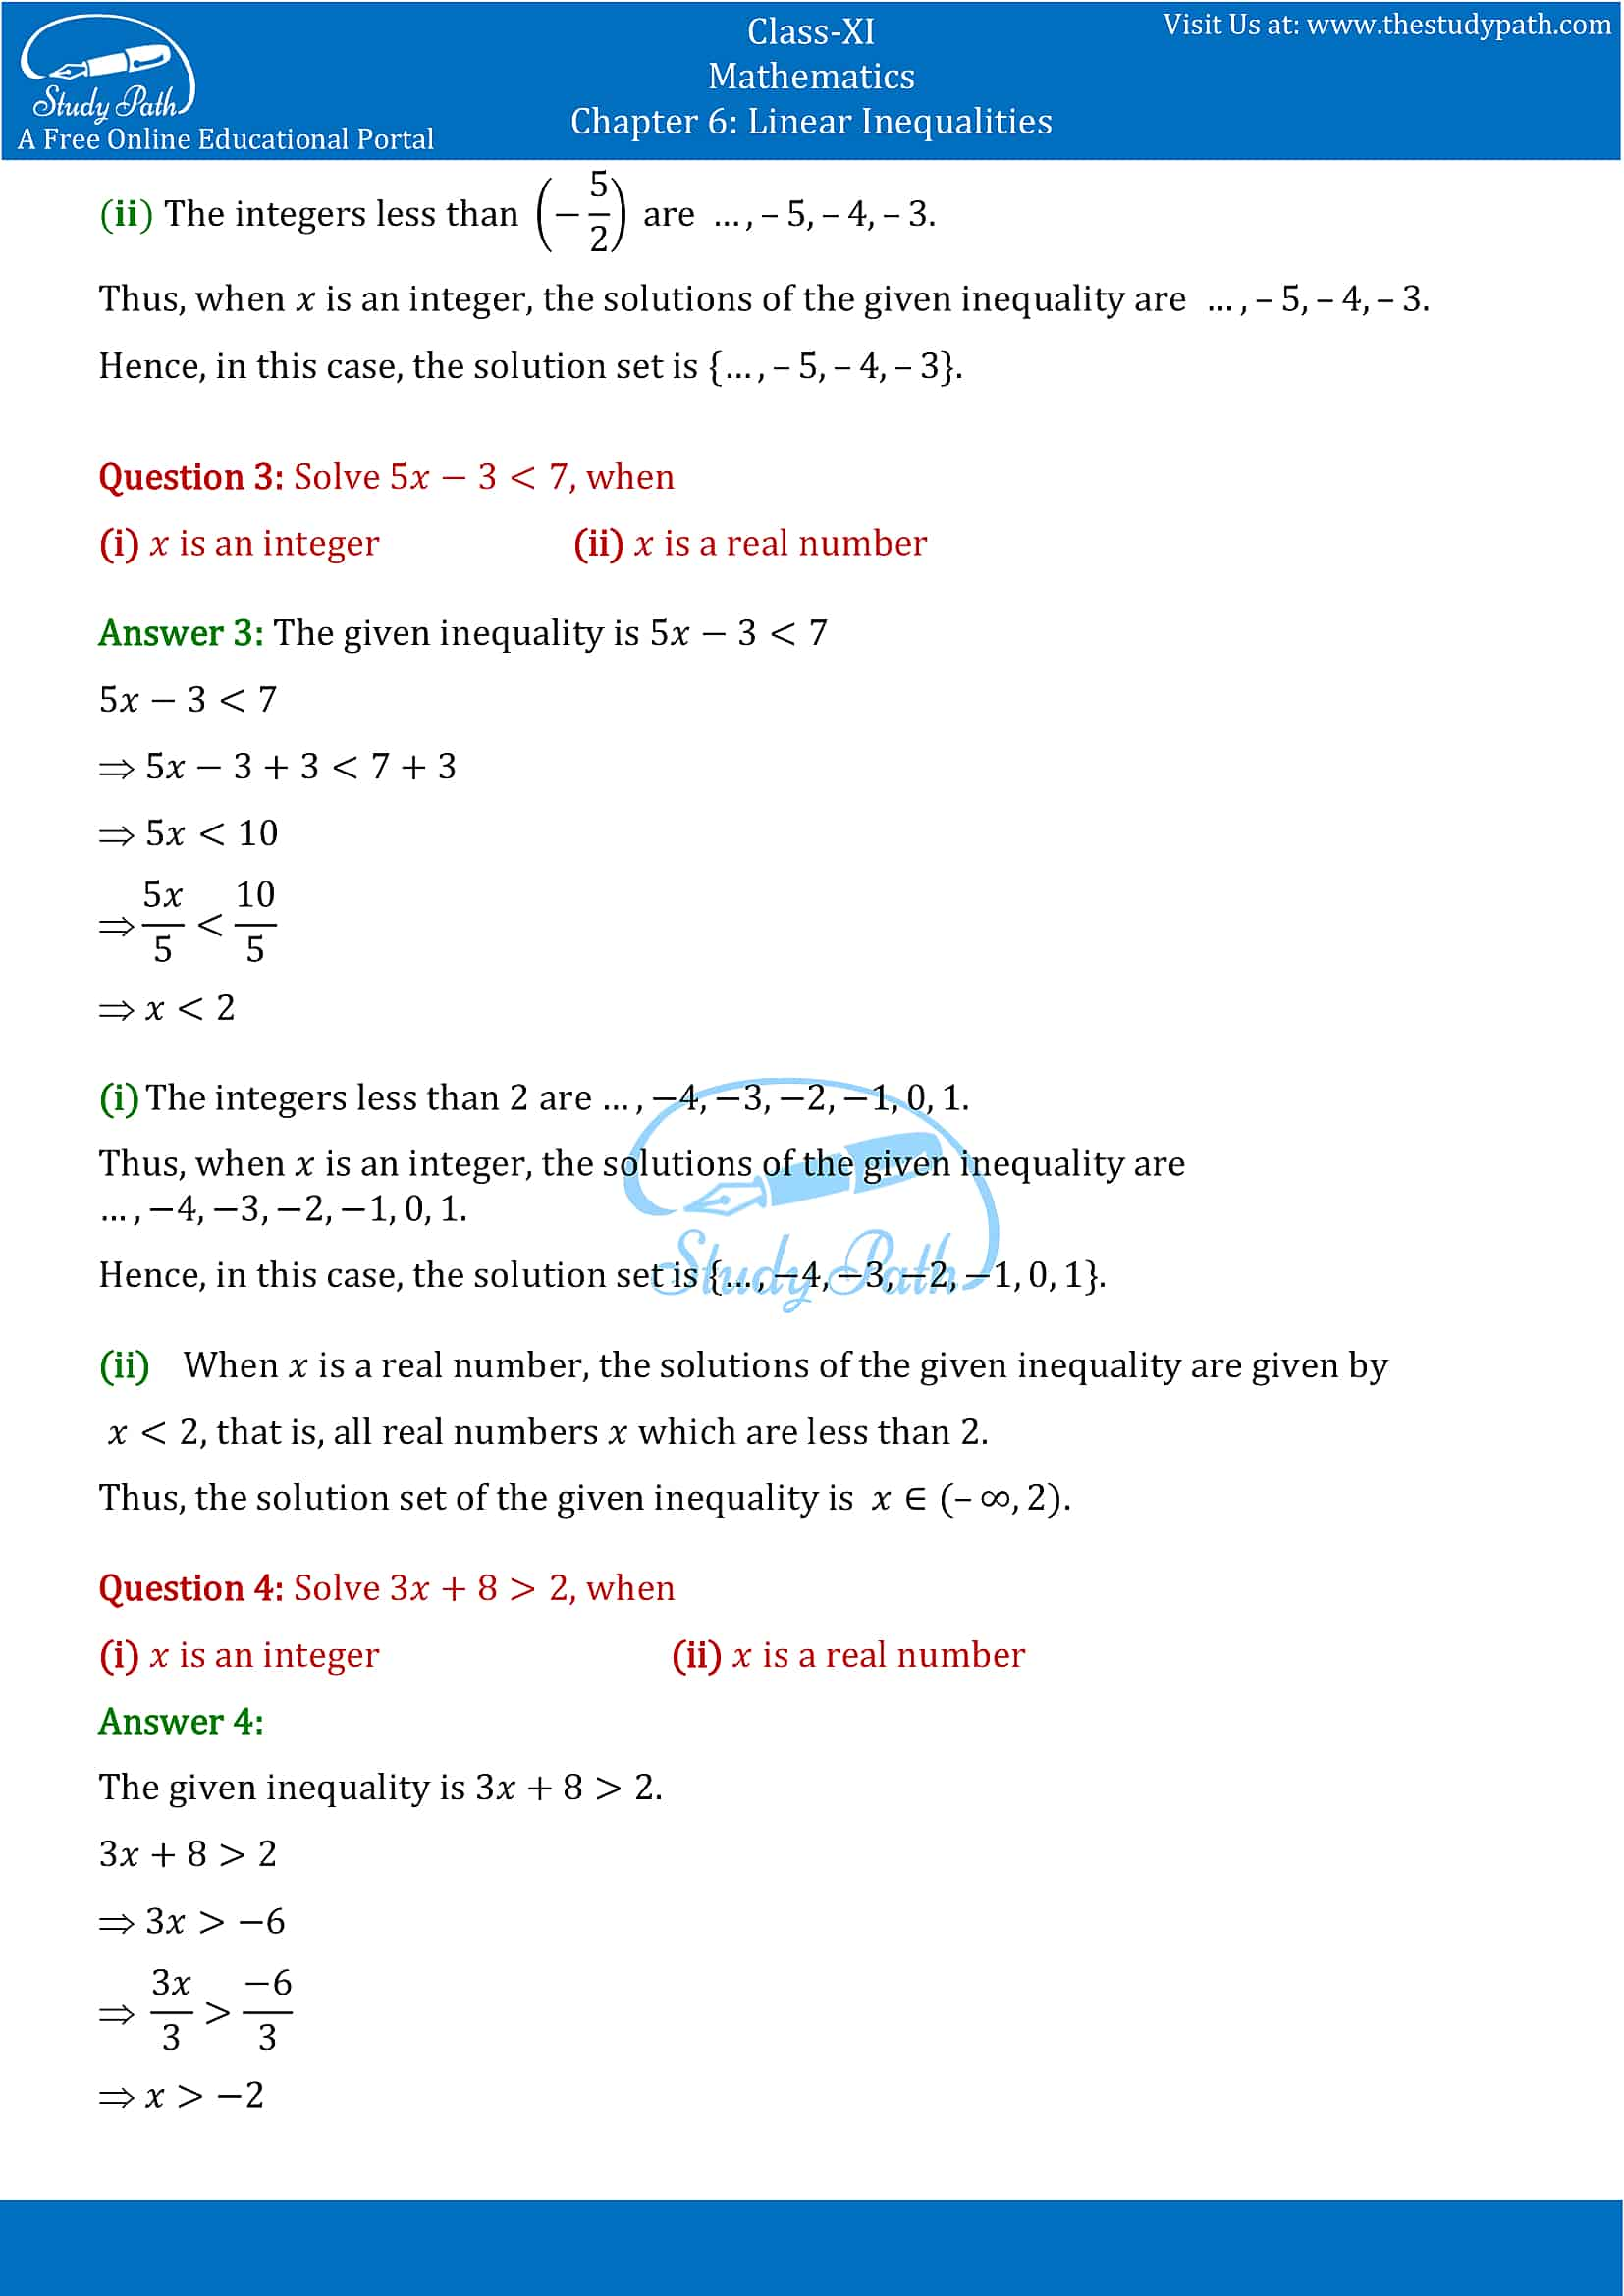 NCERT Solutions for Class 11 Maths chapter 6 Linear Inequalities Exercise 6.1 Part-2